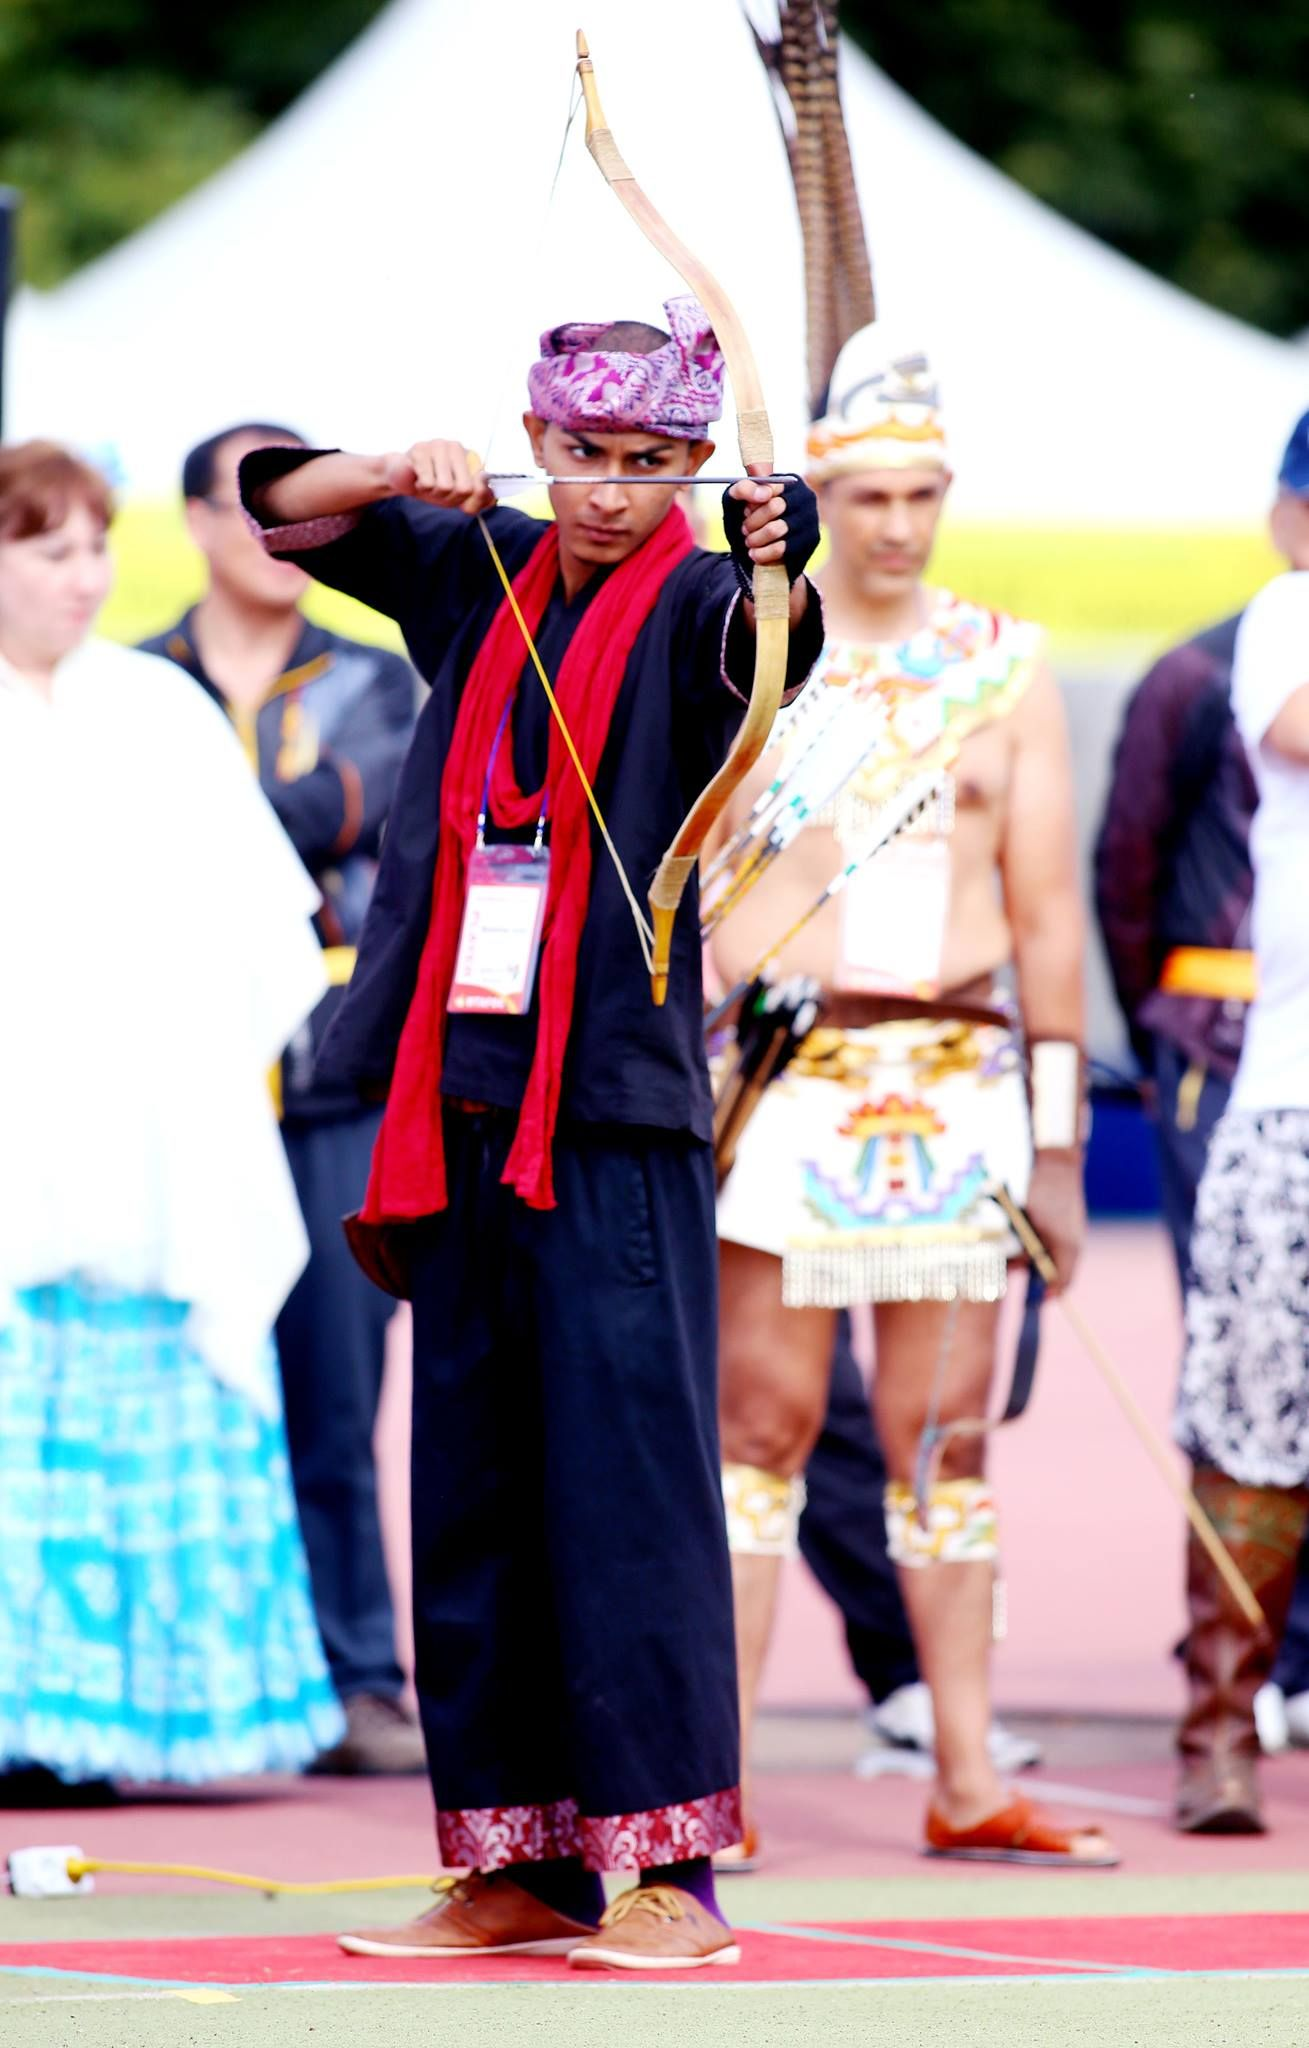 Rauuf Sheikh Fuad Bajrai. Malaysia representative at the World Traditional Archery Federation yearly competition in Korea 2013